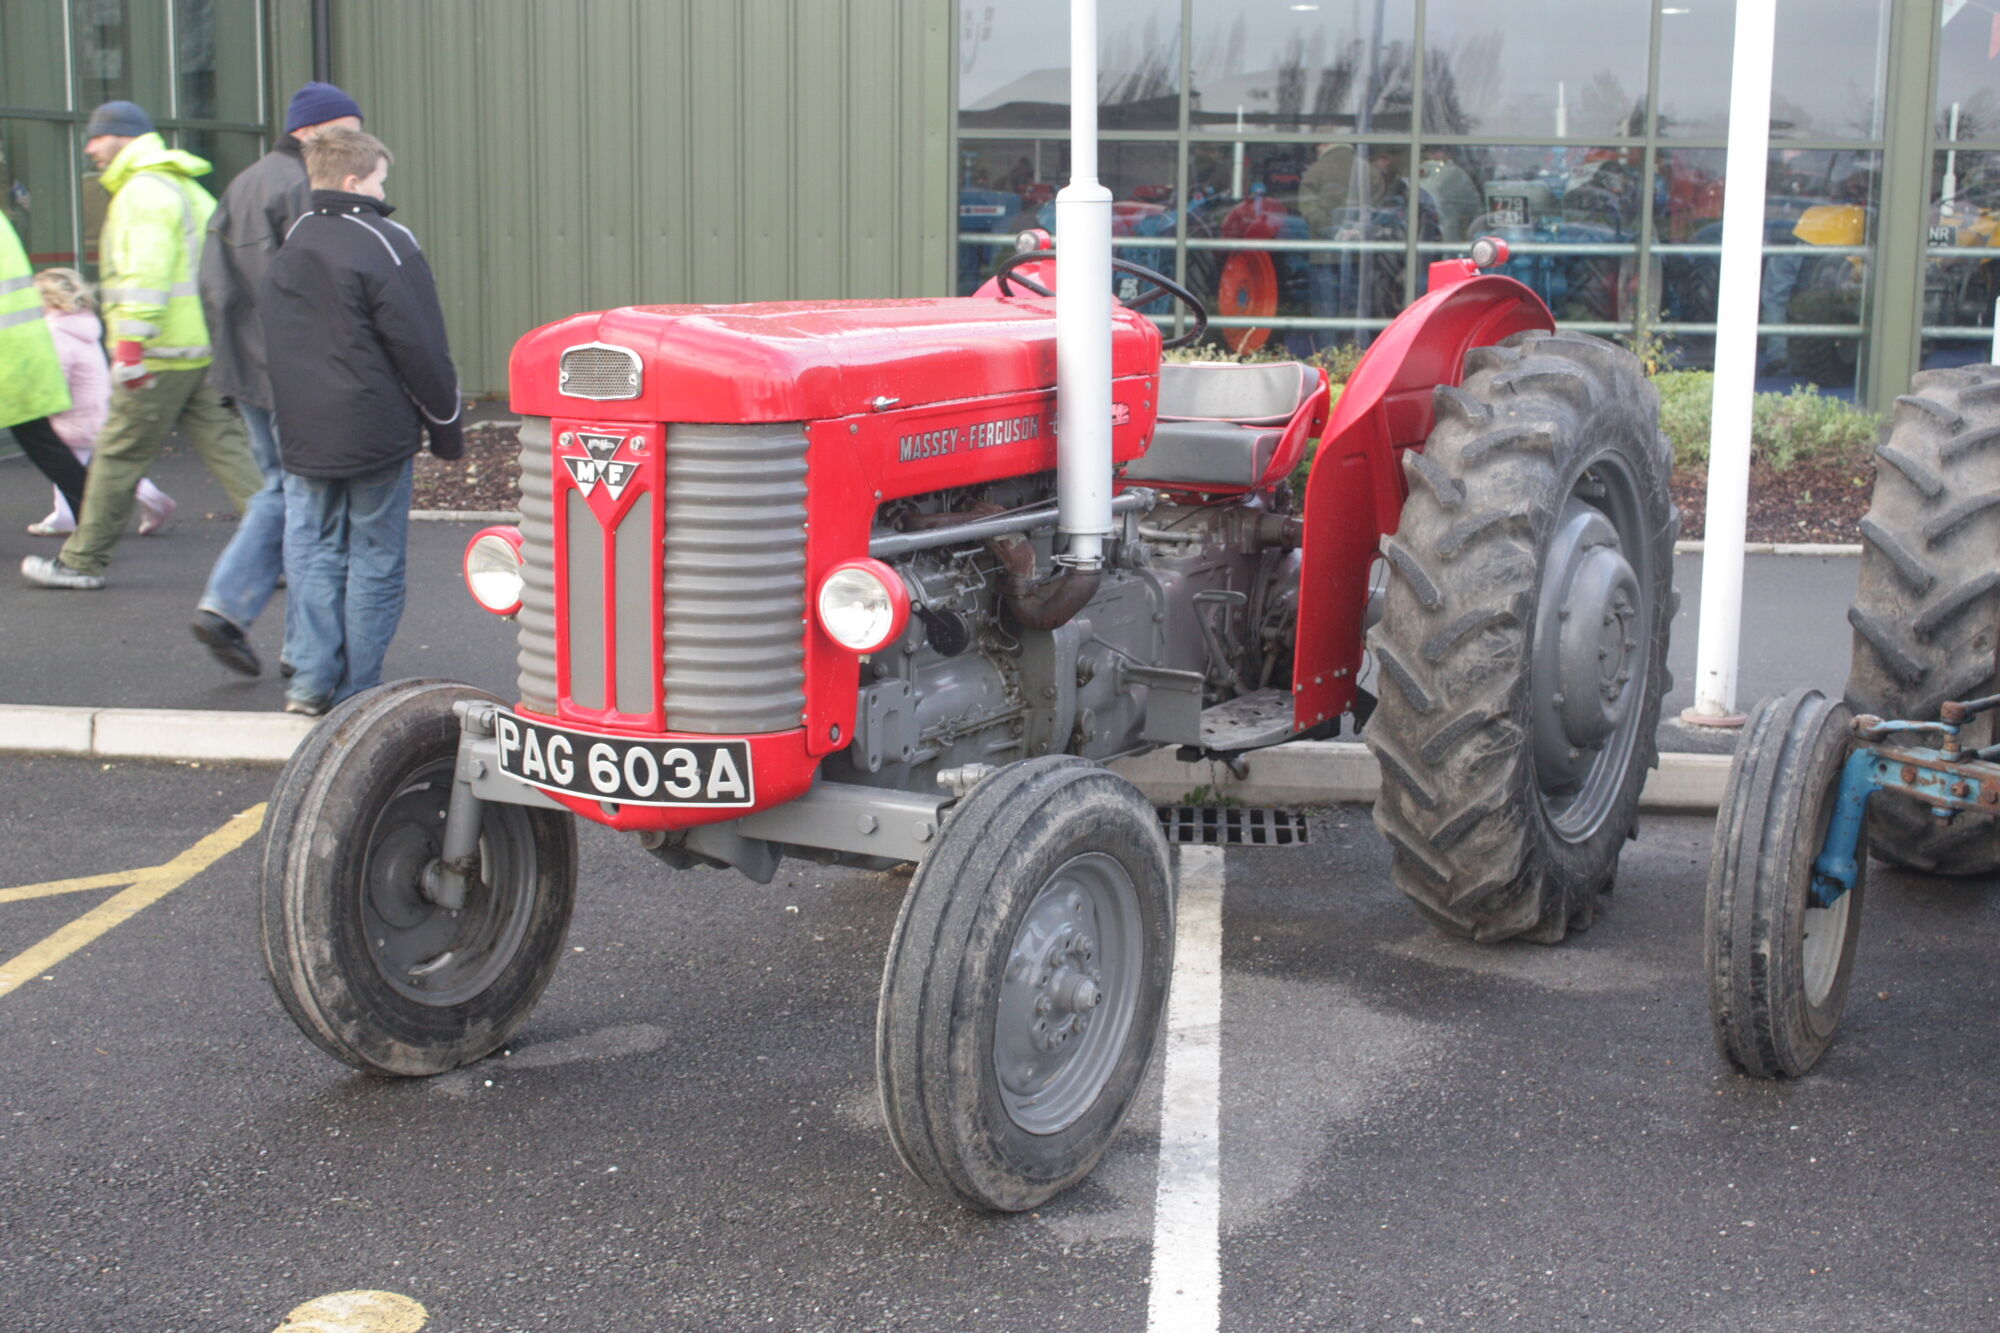 1958 Ferguson Tractor Attachments : Category model number tractor construction plant